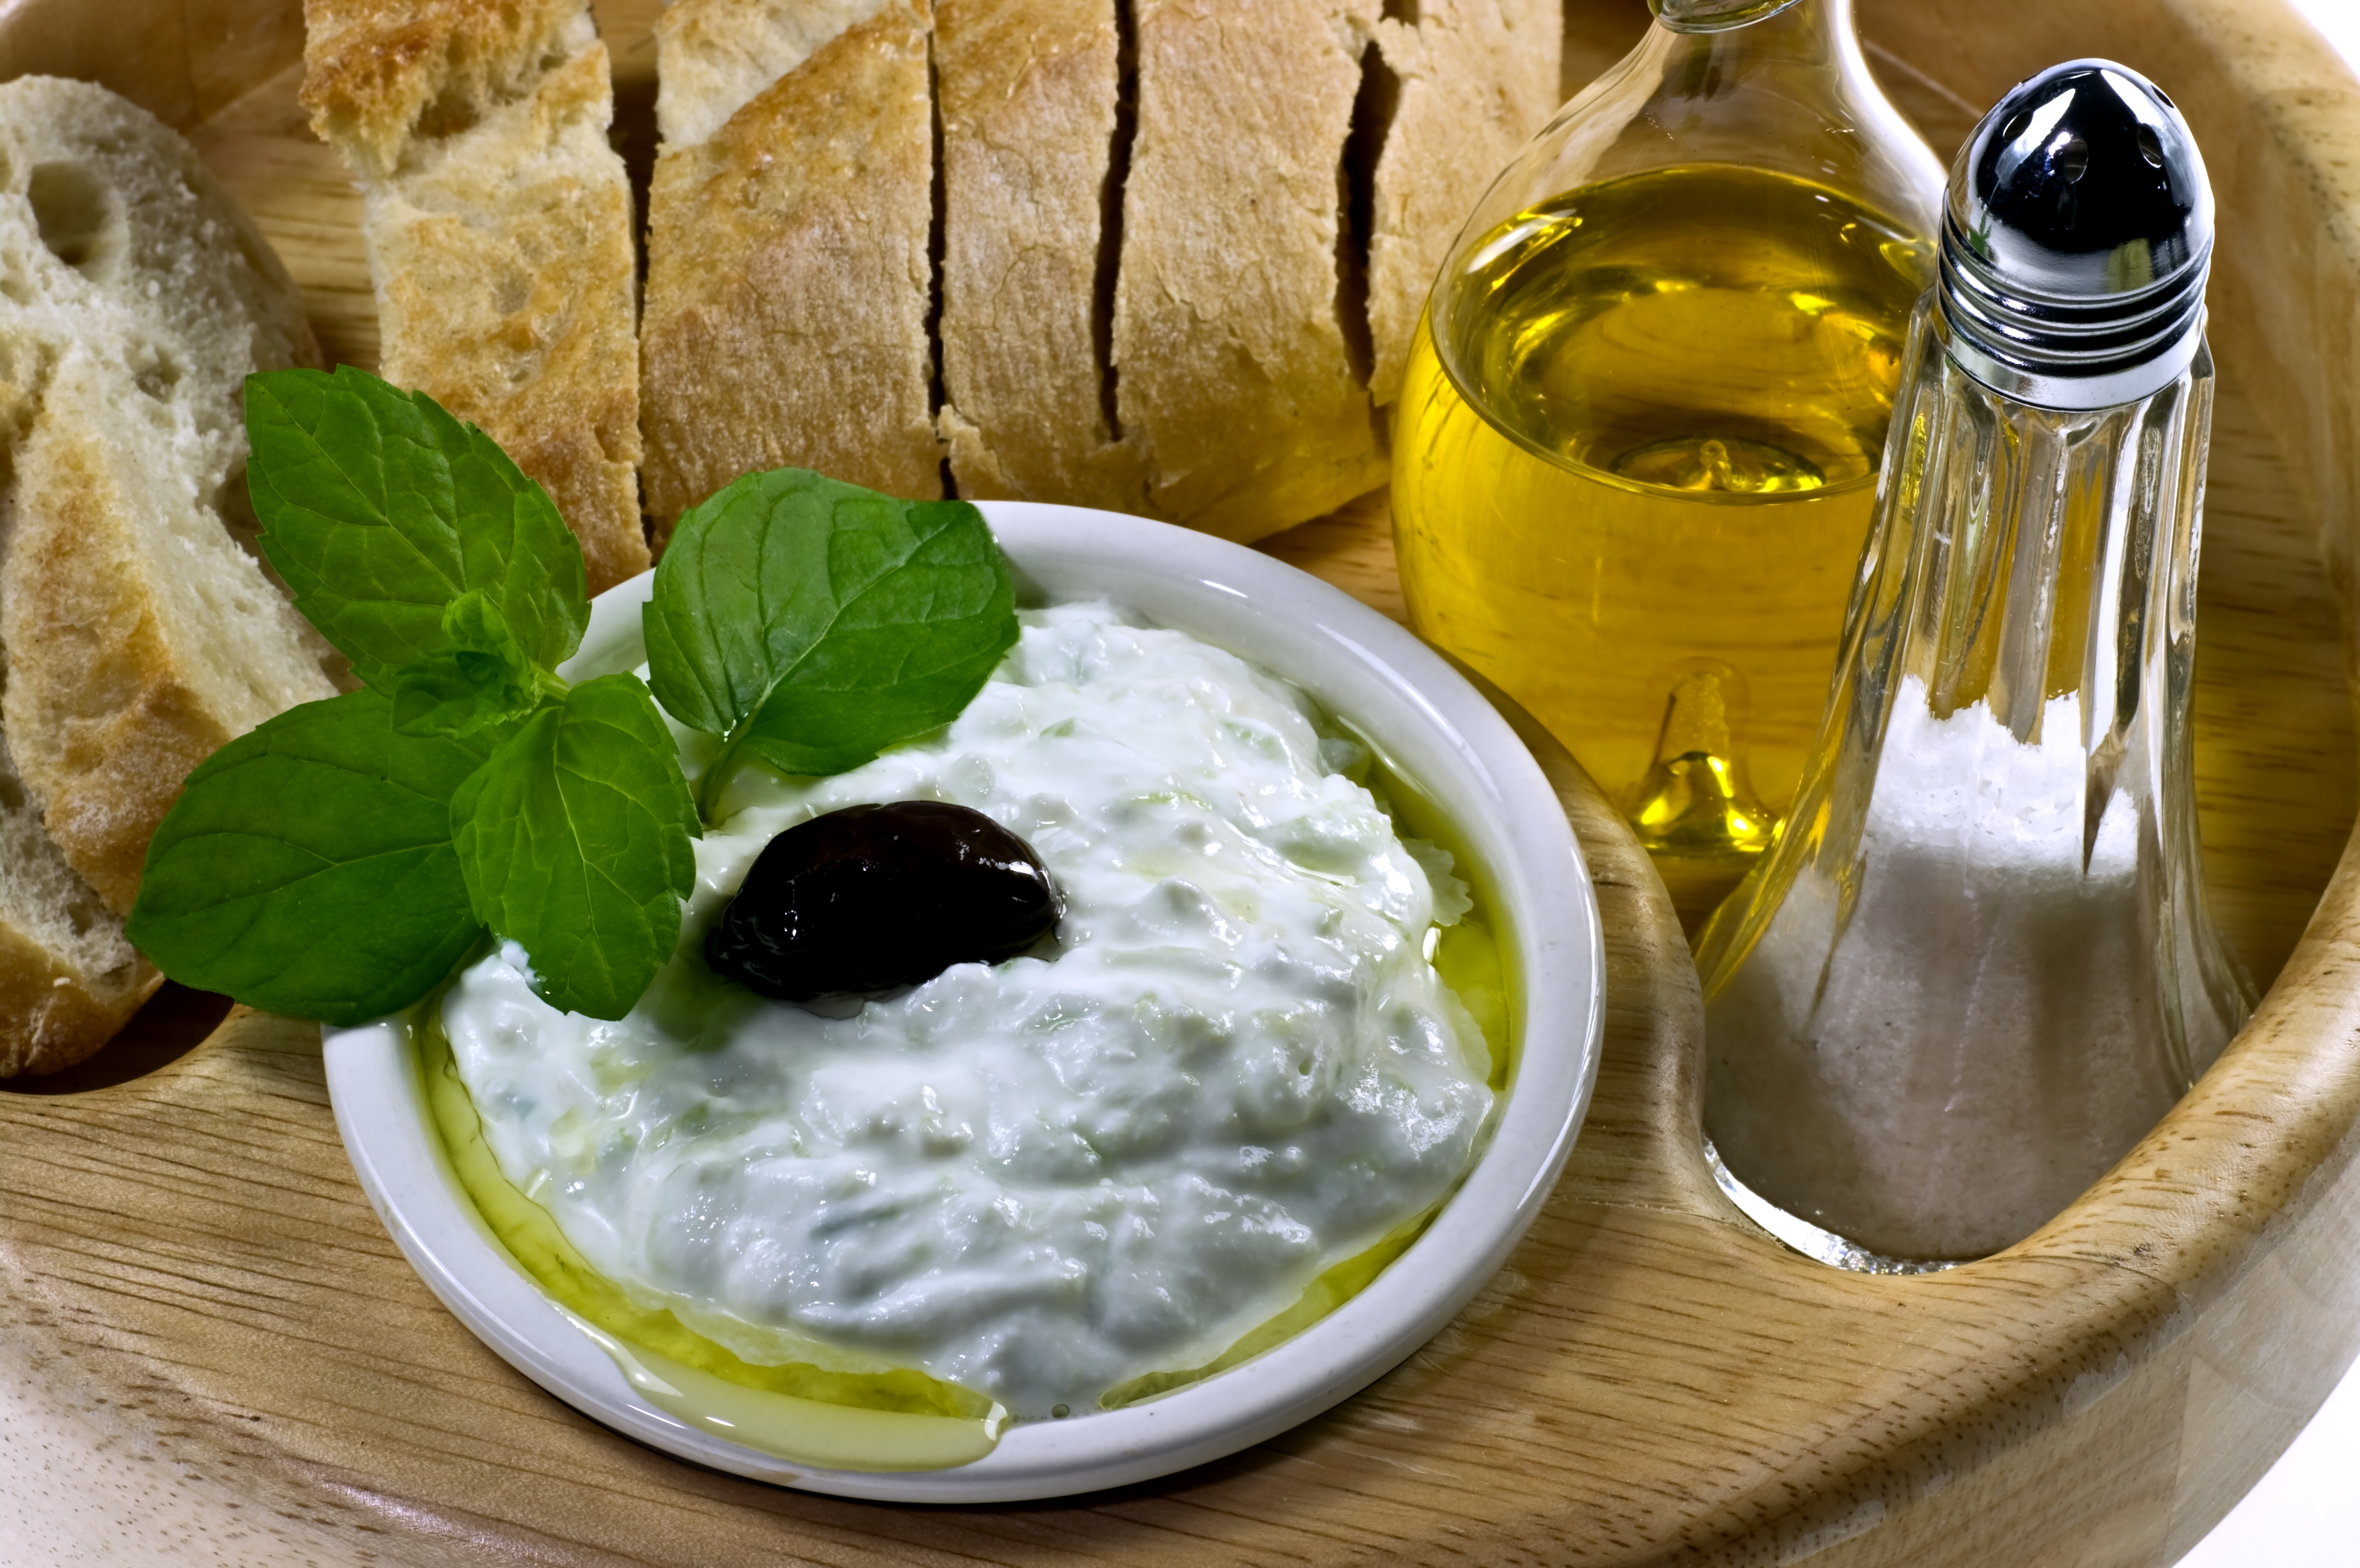 Tzatziki and olive oil